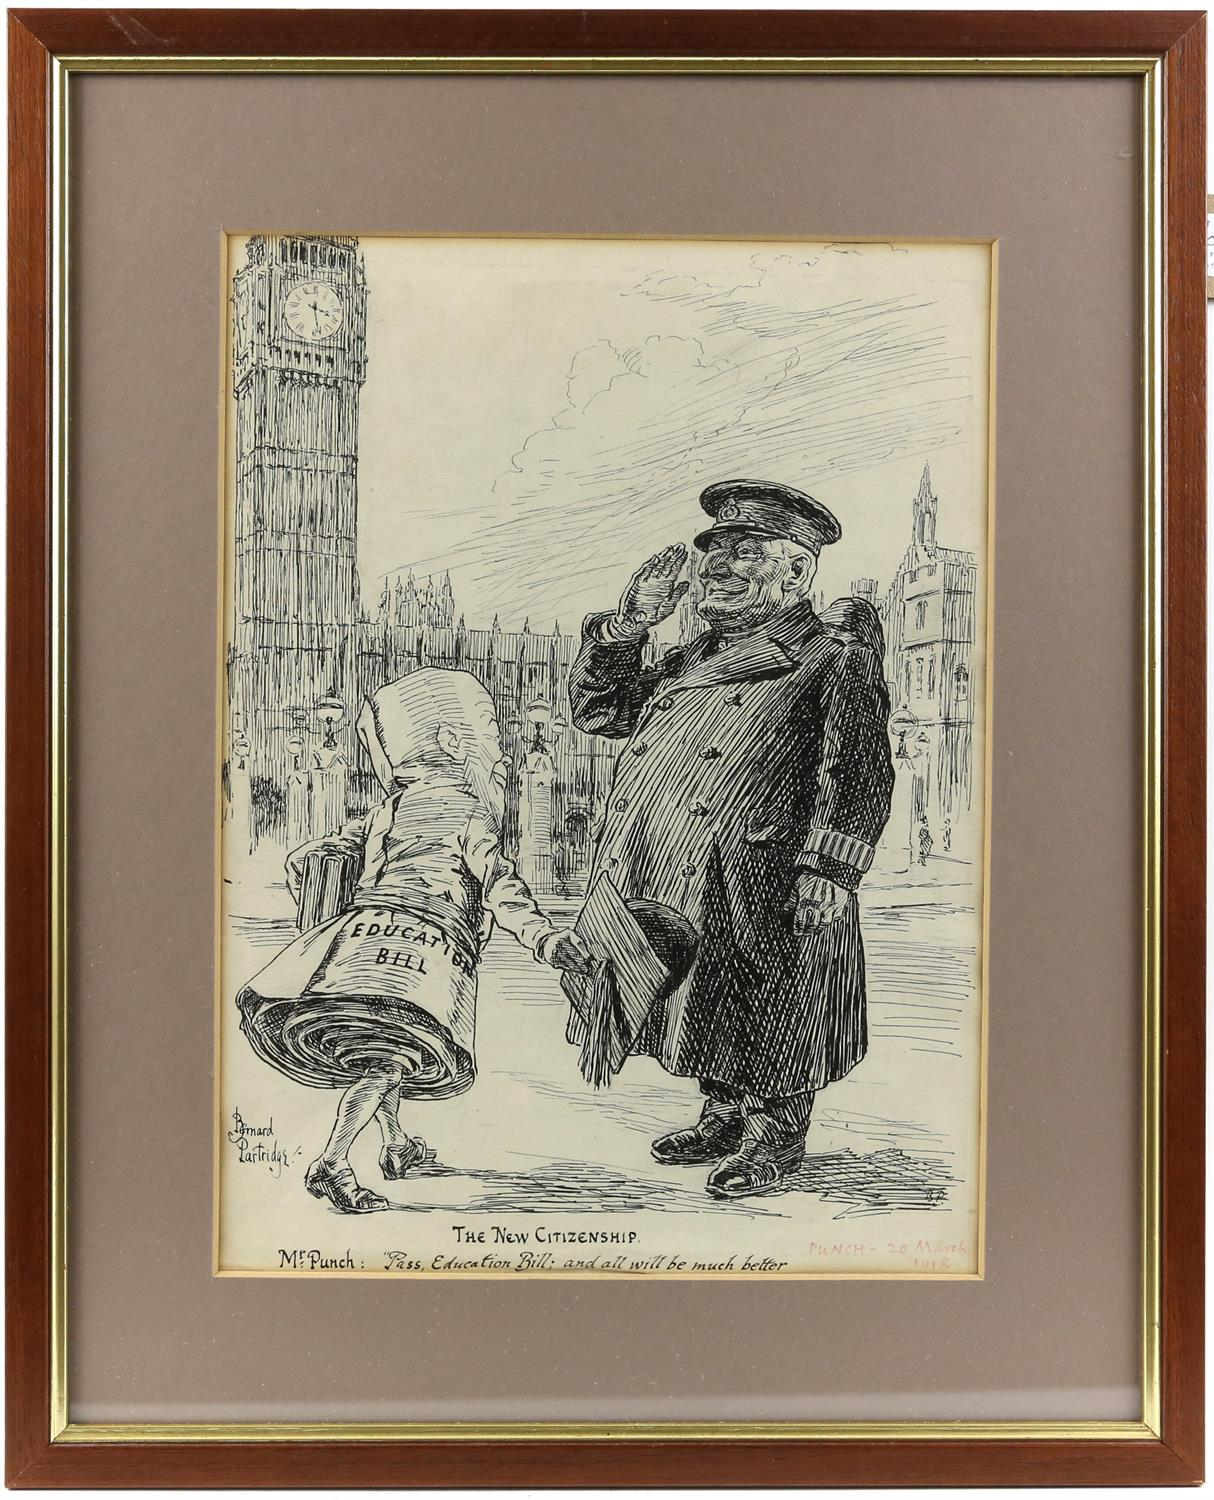 """Bernard Partridge (British, 1861-1945), 'The New Citizenship - Mr Punch: """"Pass, Education Bill; and - Image 2 of 3"""